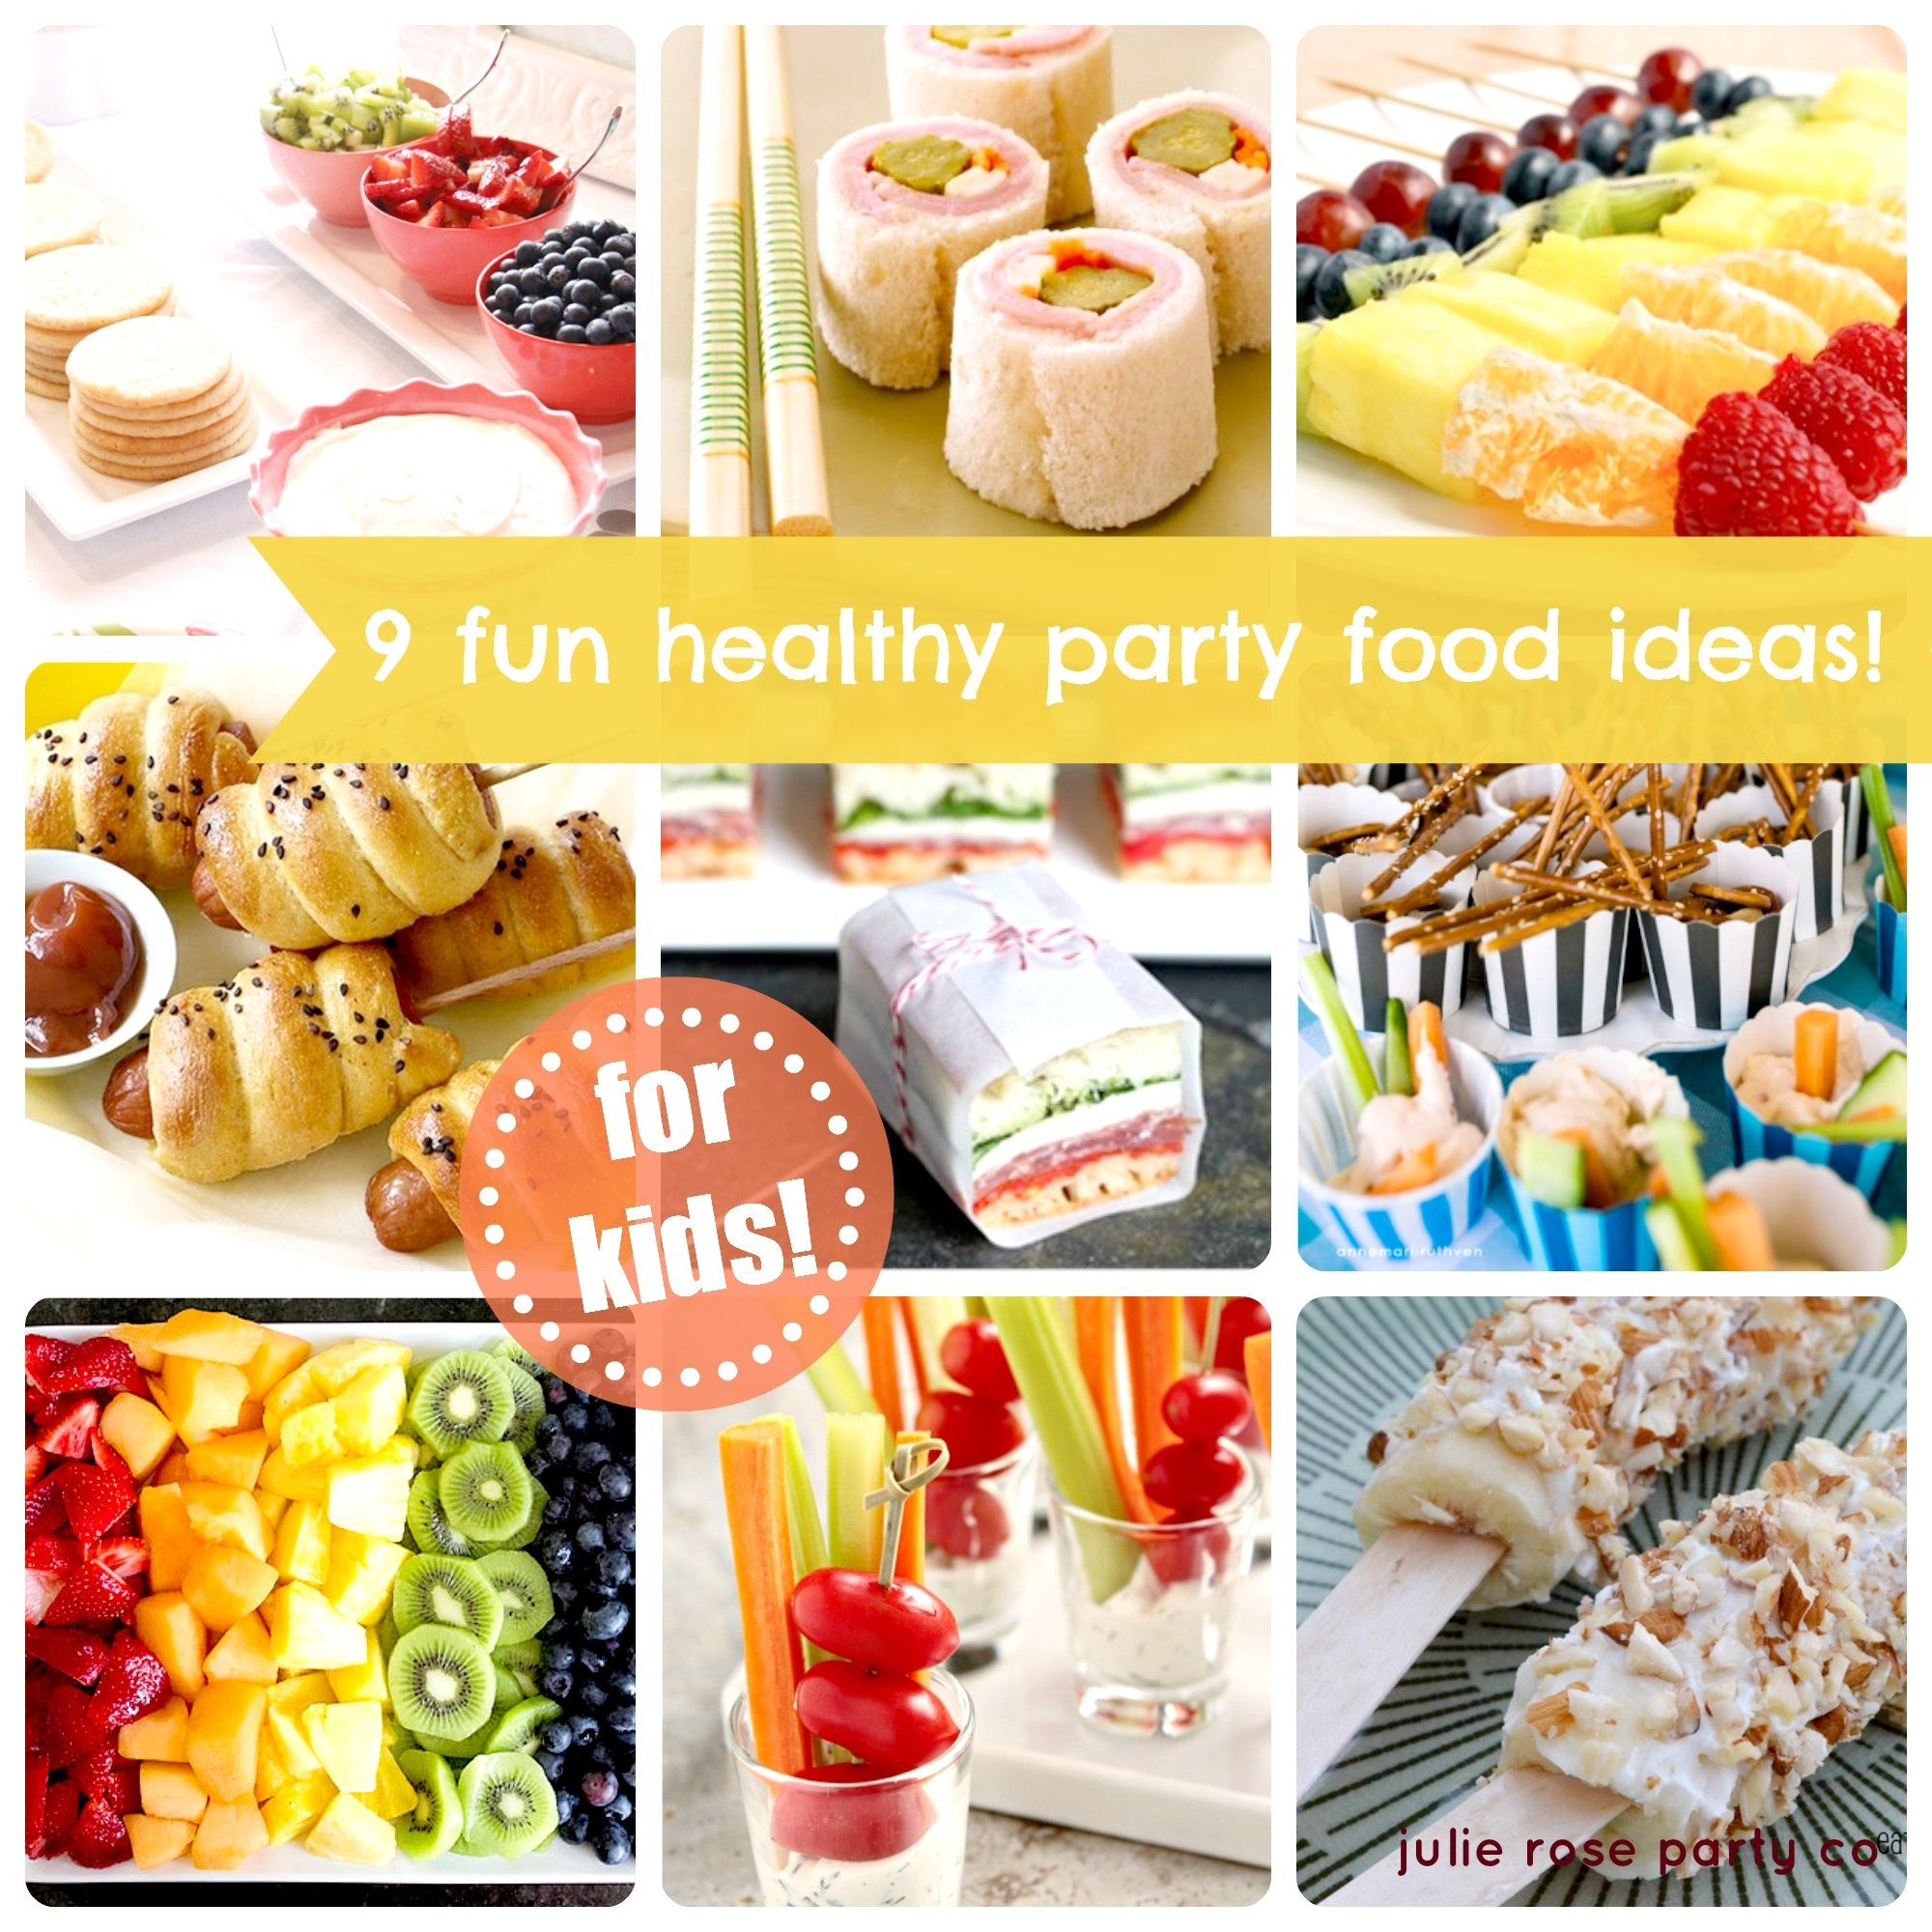 10 Fashionable Fun Party Ideas For Kids 9 fun and healthy party food ideas kids julie rose party co 2 2020